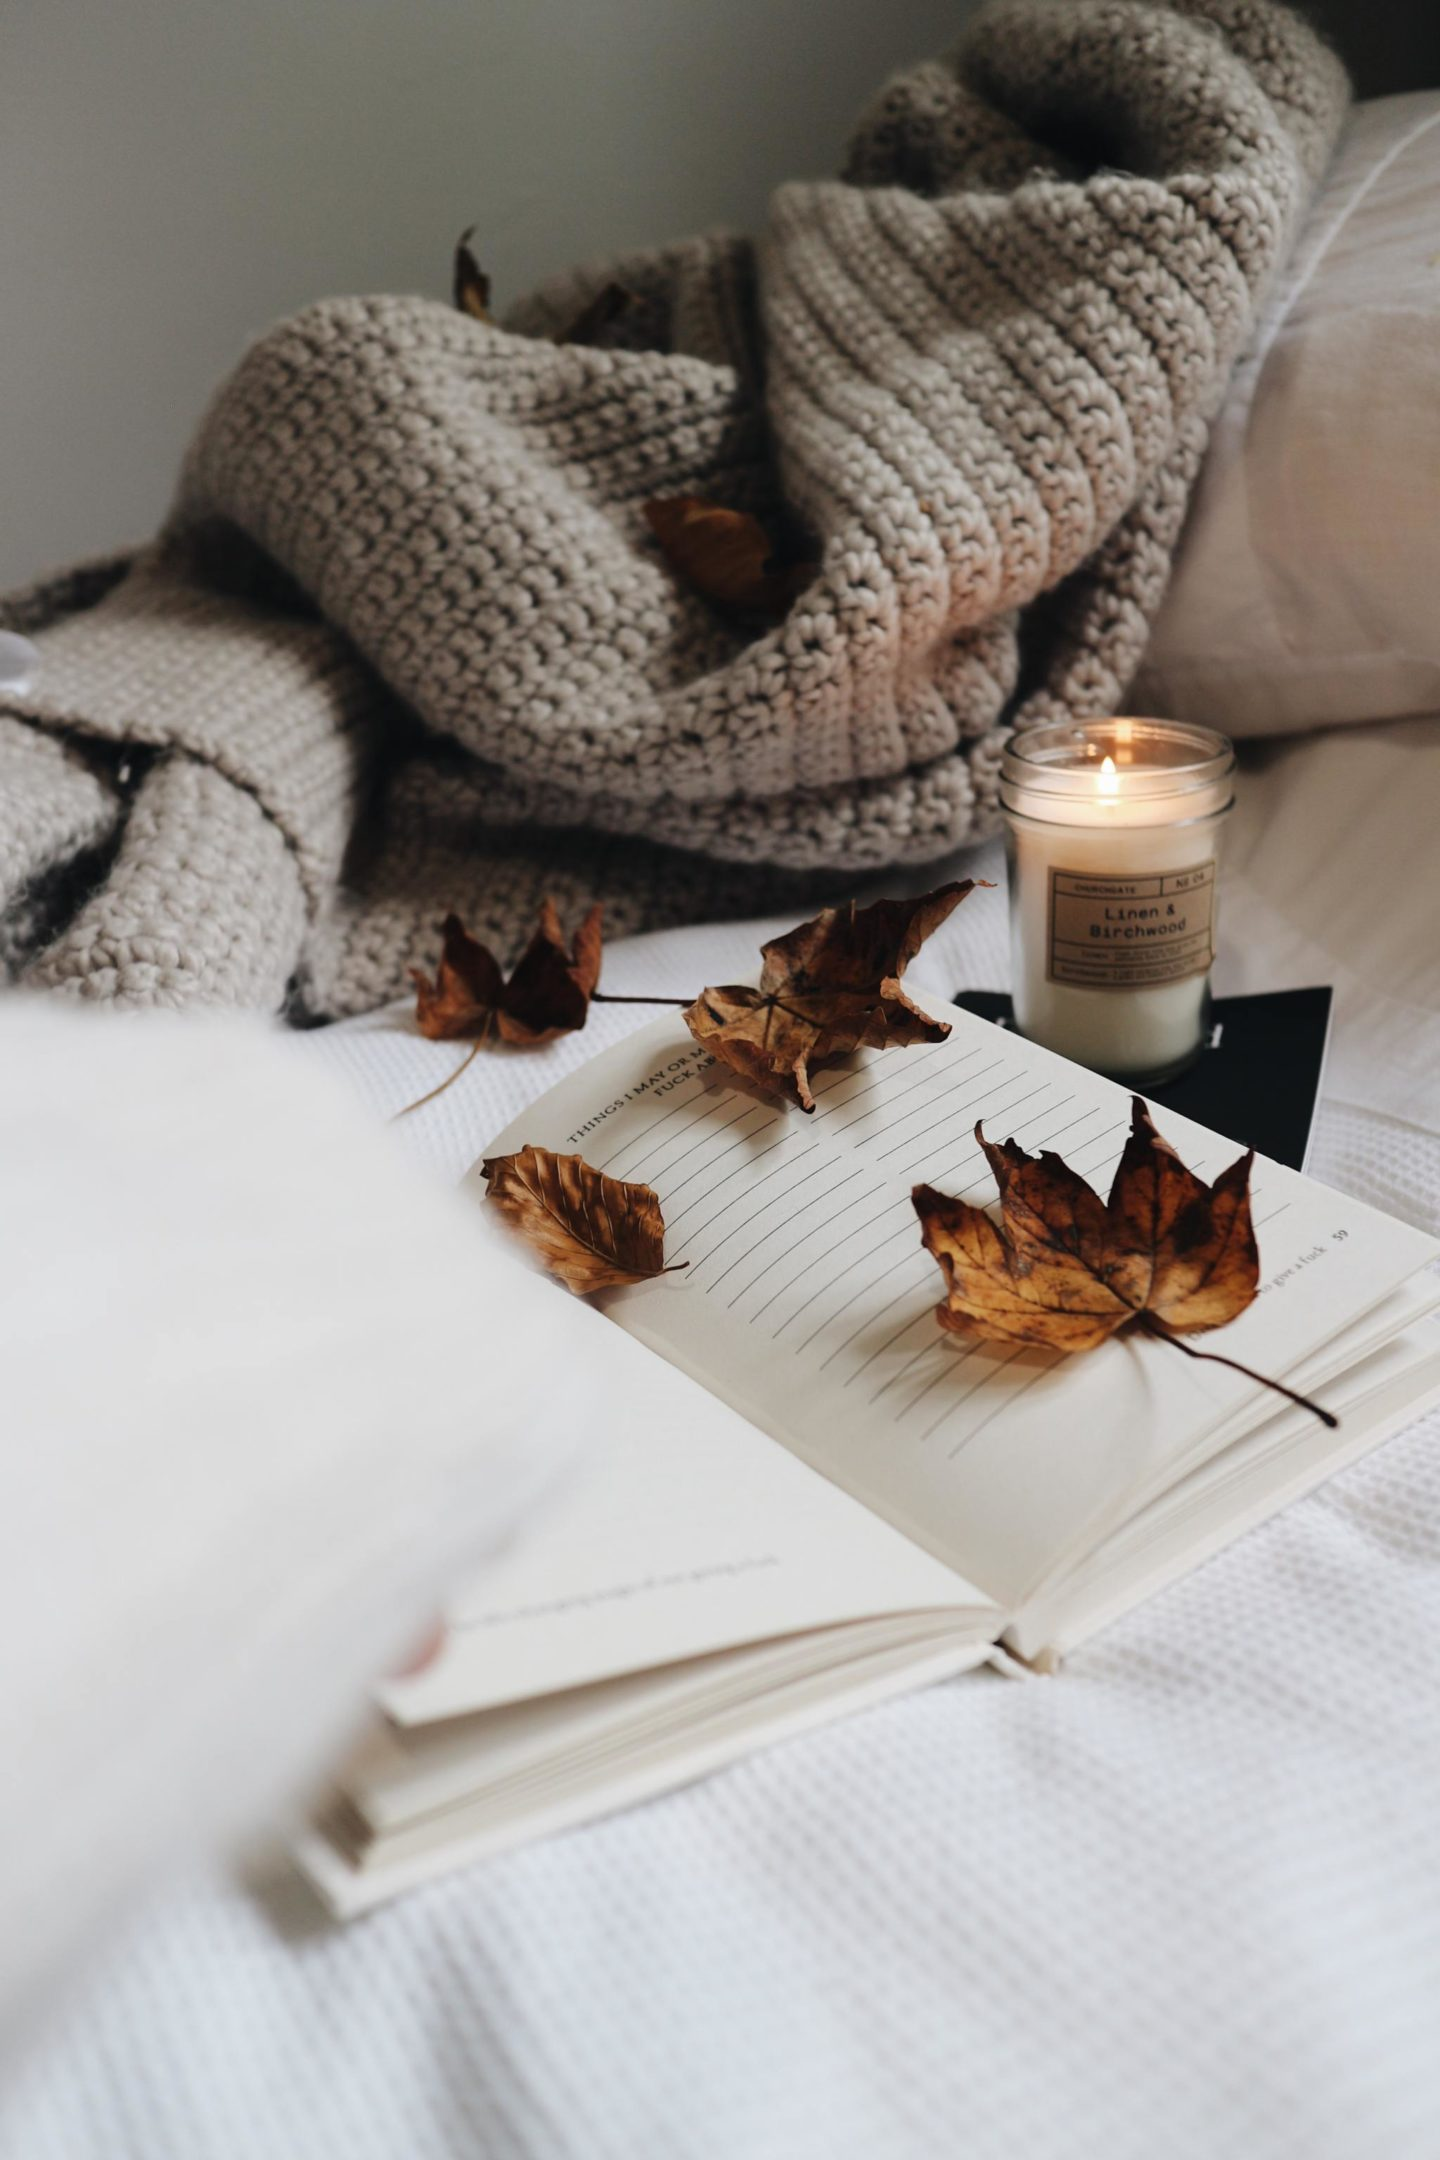 Blog post ideas for autumn